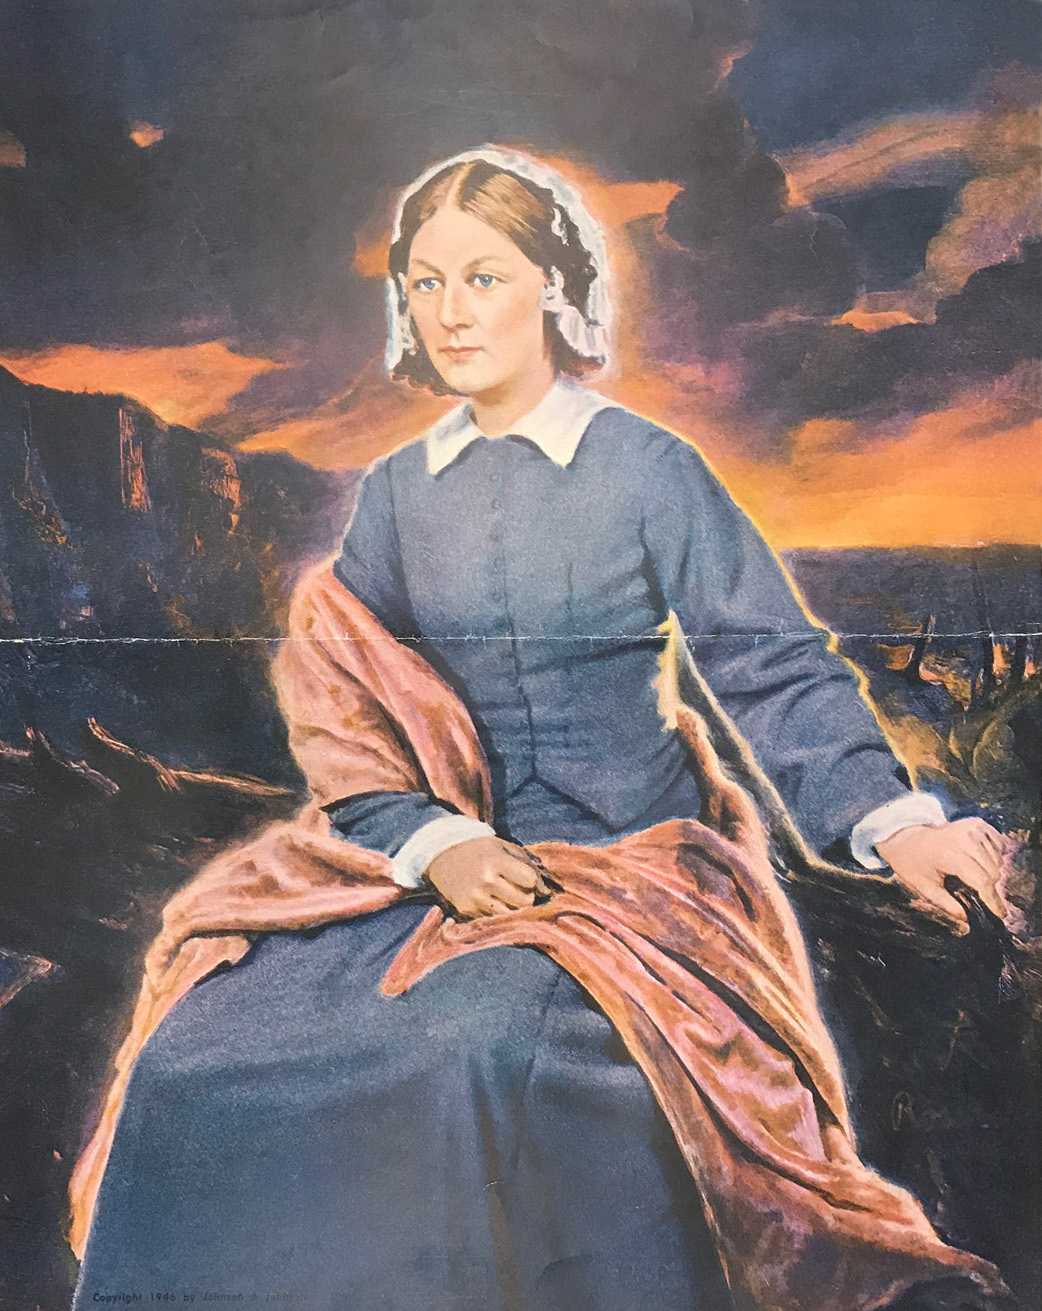 The painting of Florence Nightingale commissioned by Johnson & Johnson. Image courtesy: Johnson & Johnson Archives.